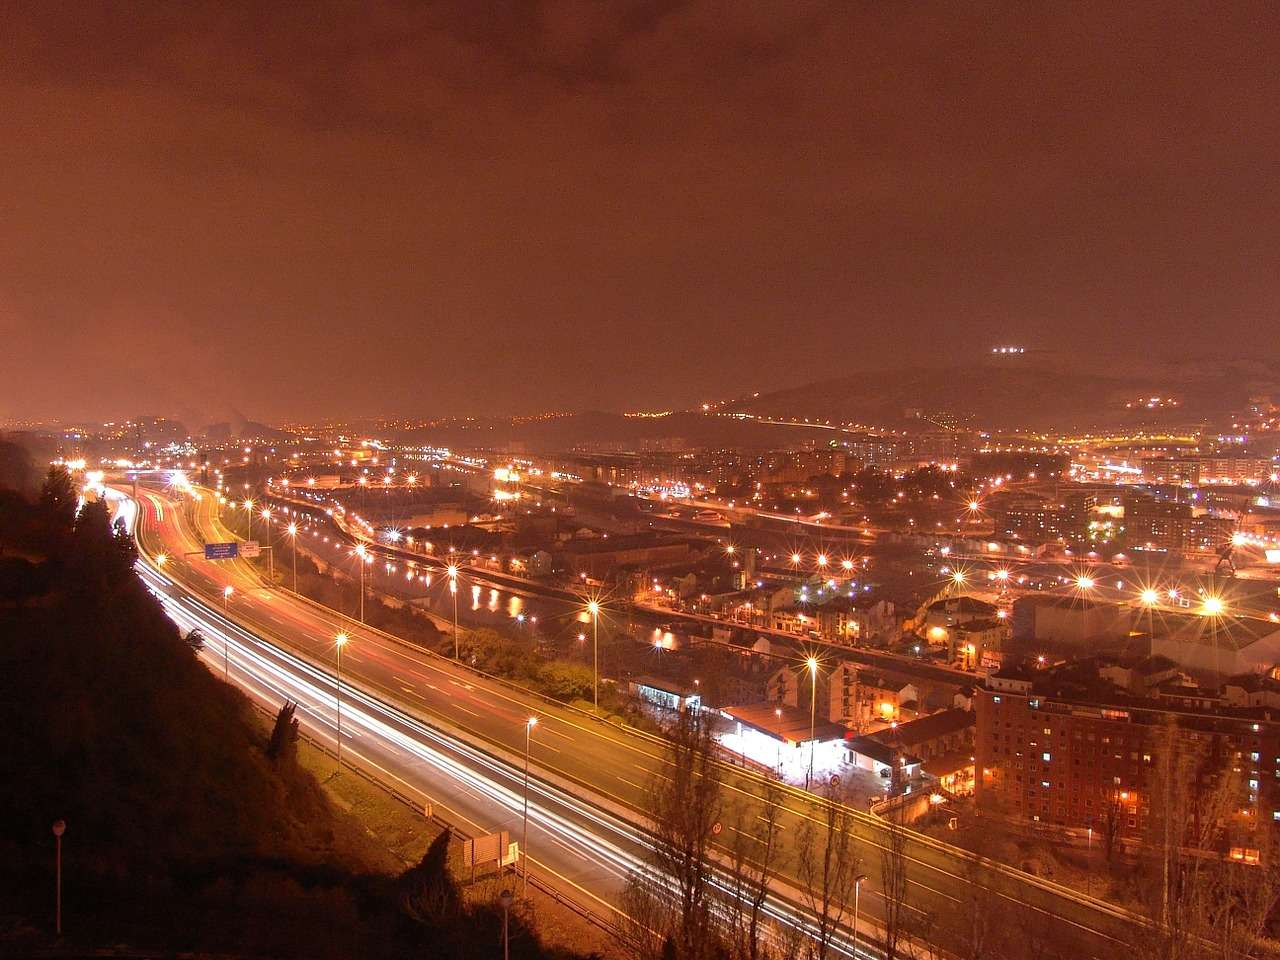 Night View at Bilbao